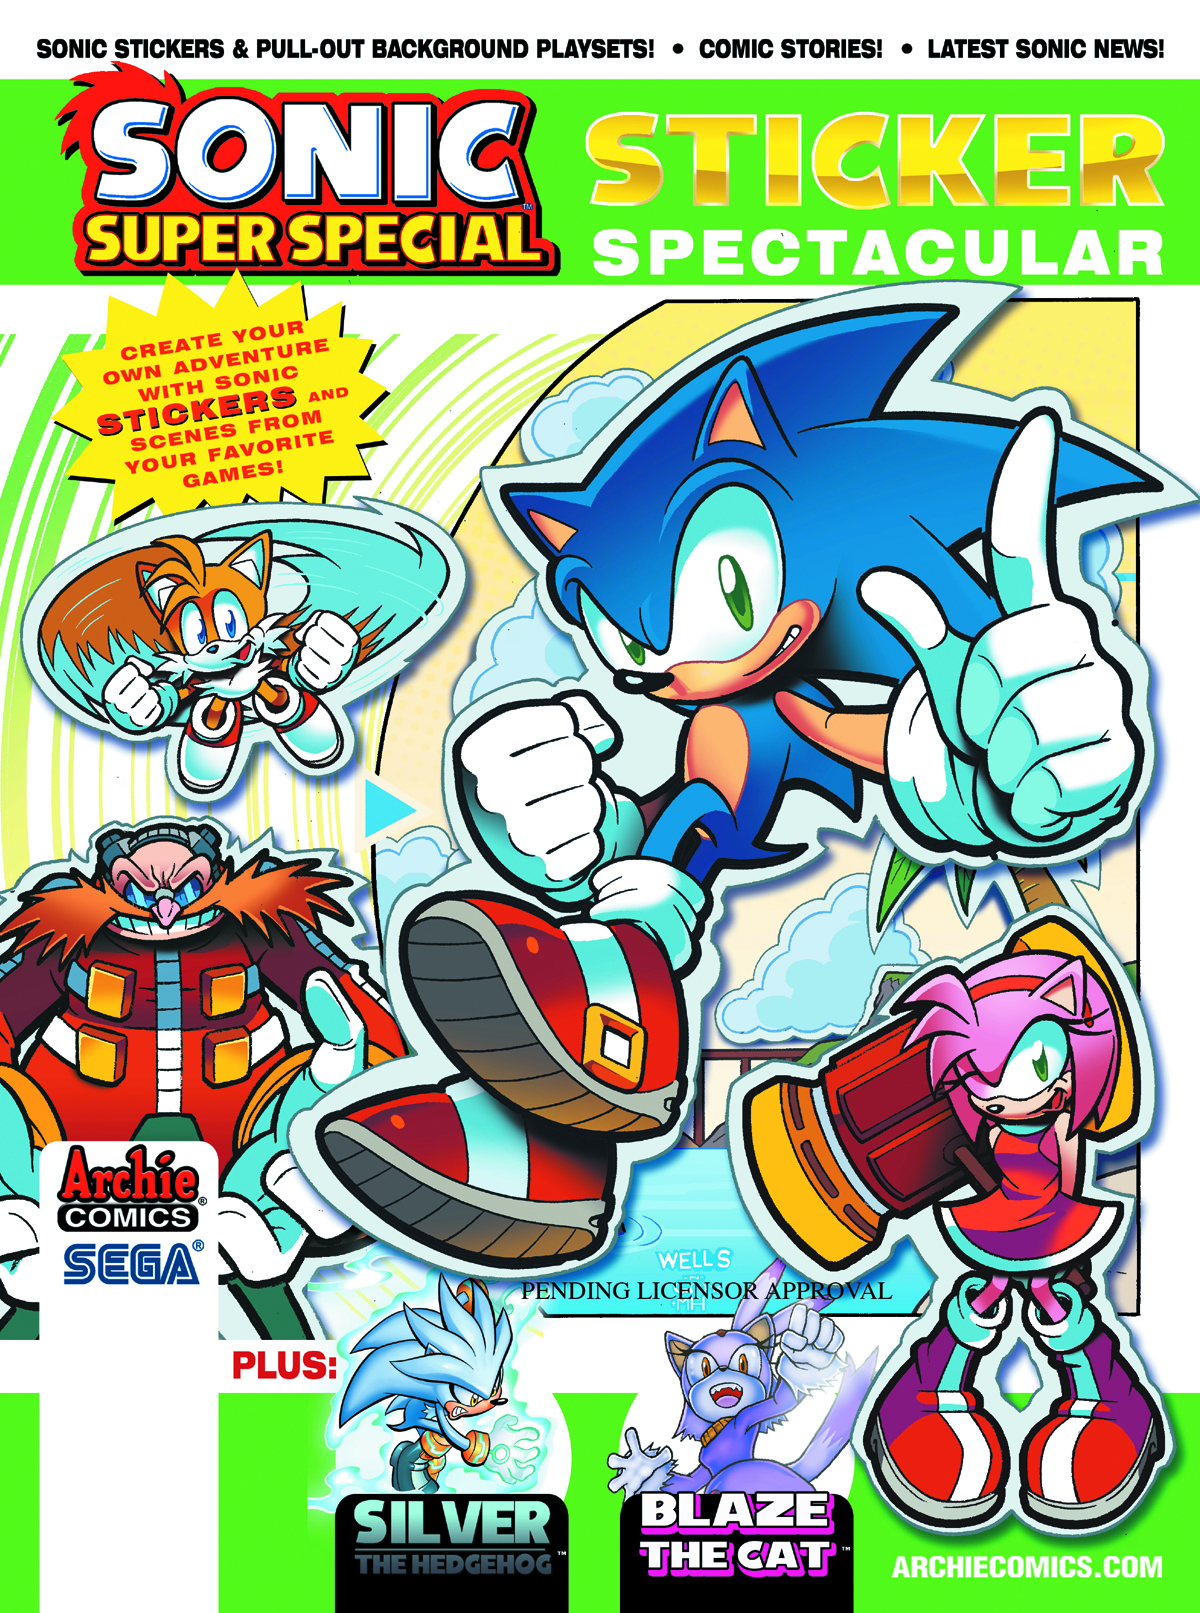 SONIC SUPER SPECIAL MAGAZINE #8 STICKER SPECTACULAR